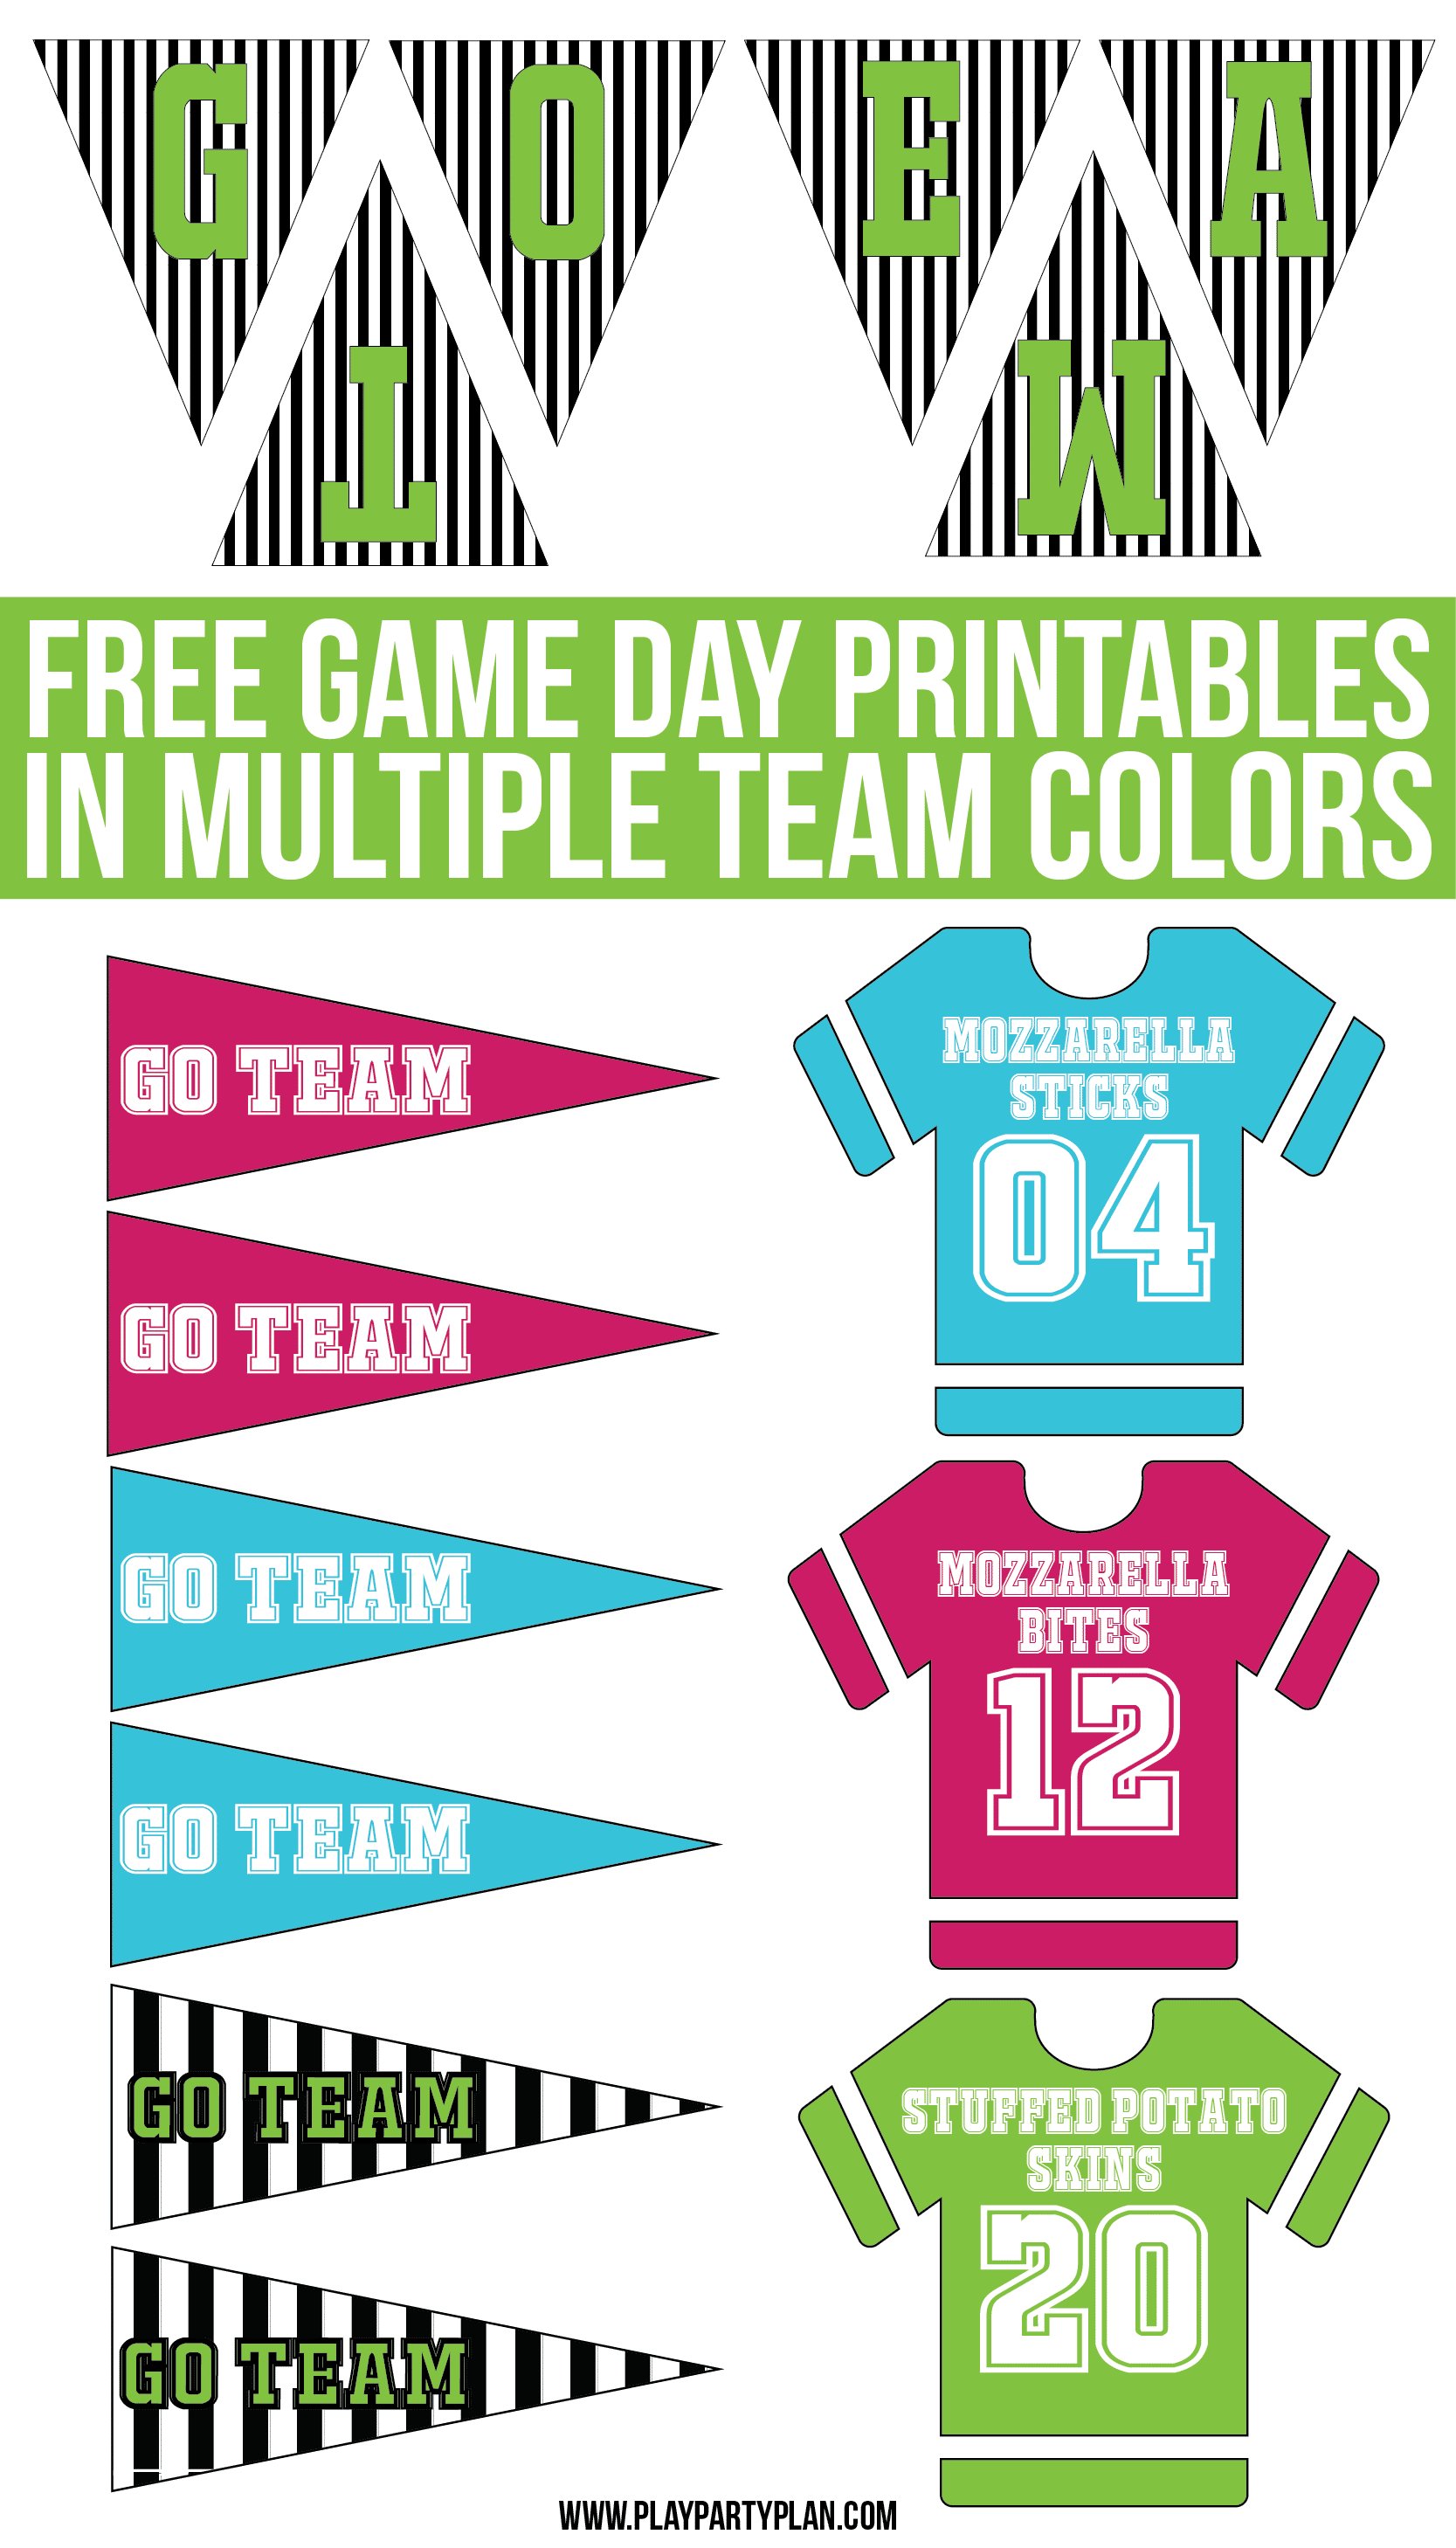 Free game day party printables